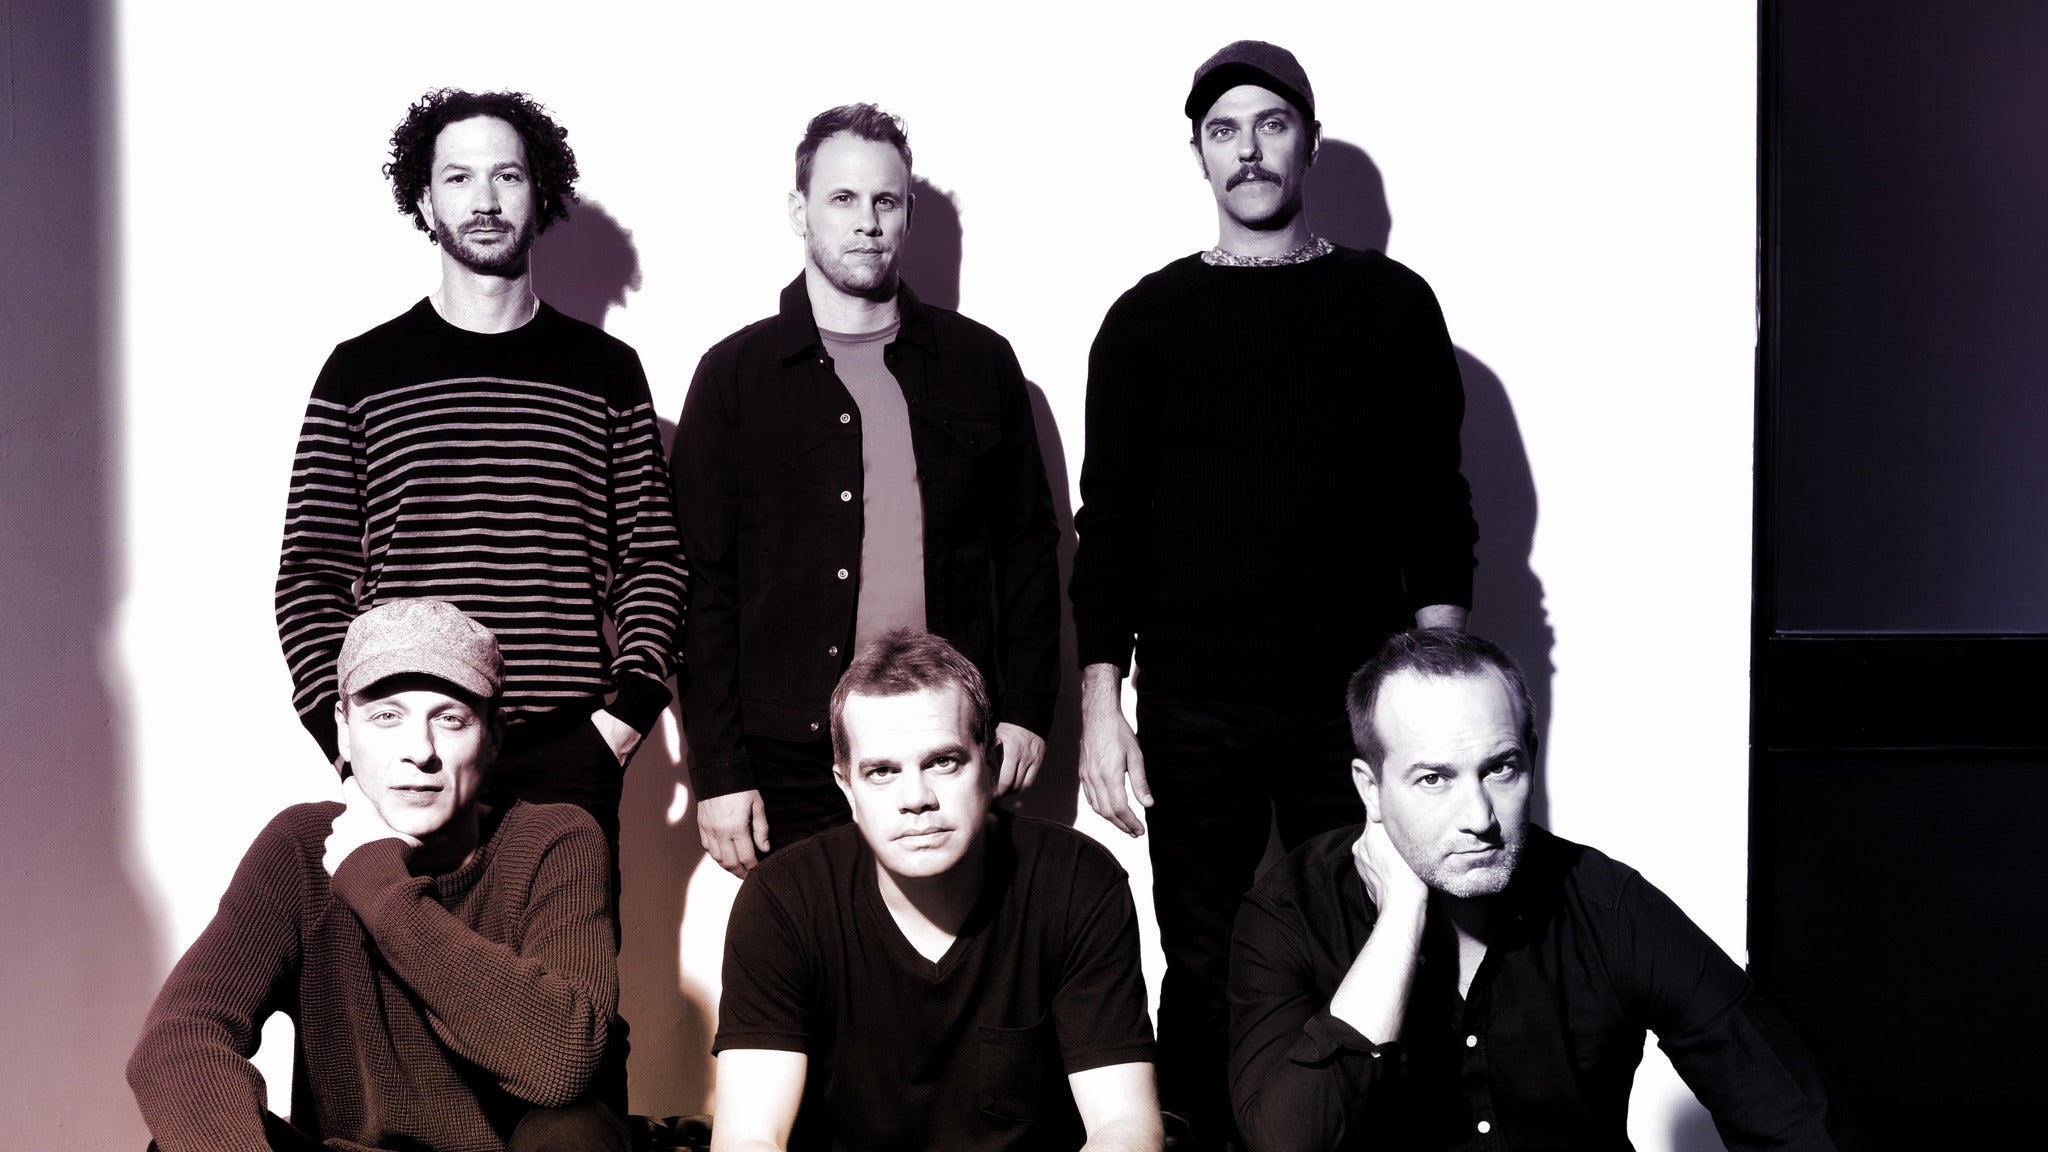 Umphrey's McGee at Belly Up Aspen